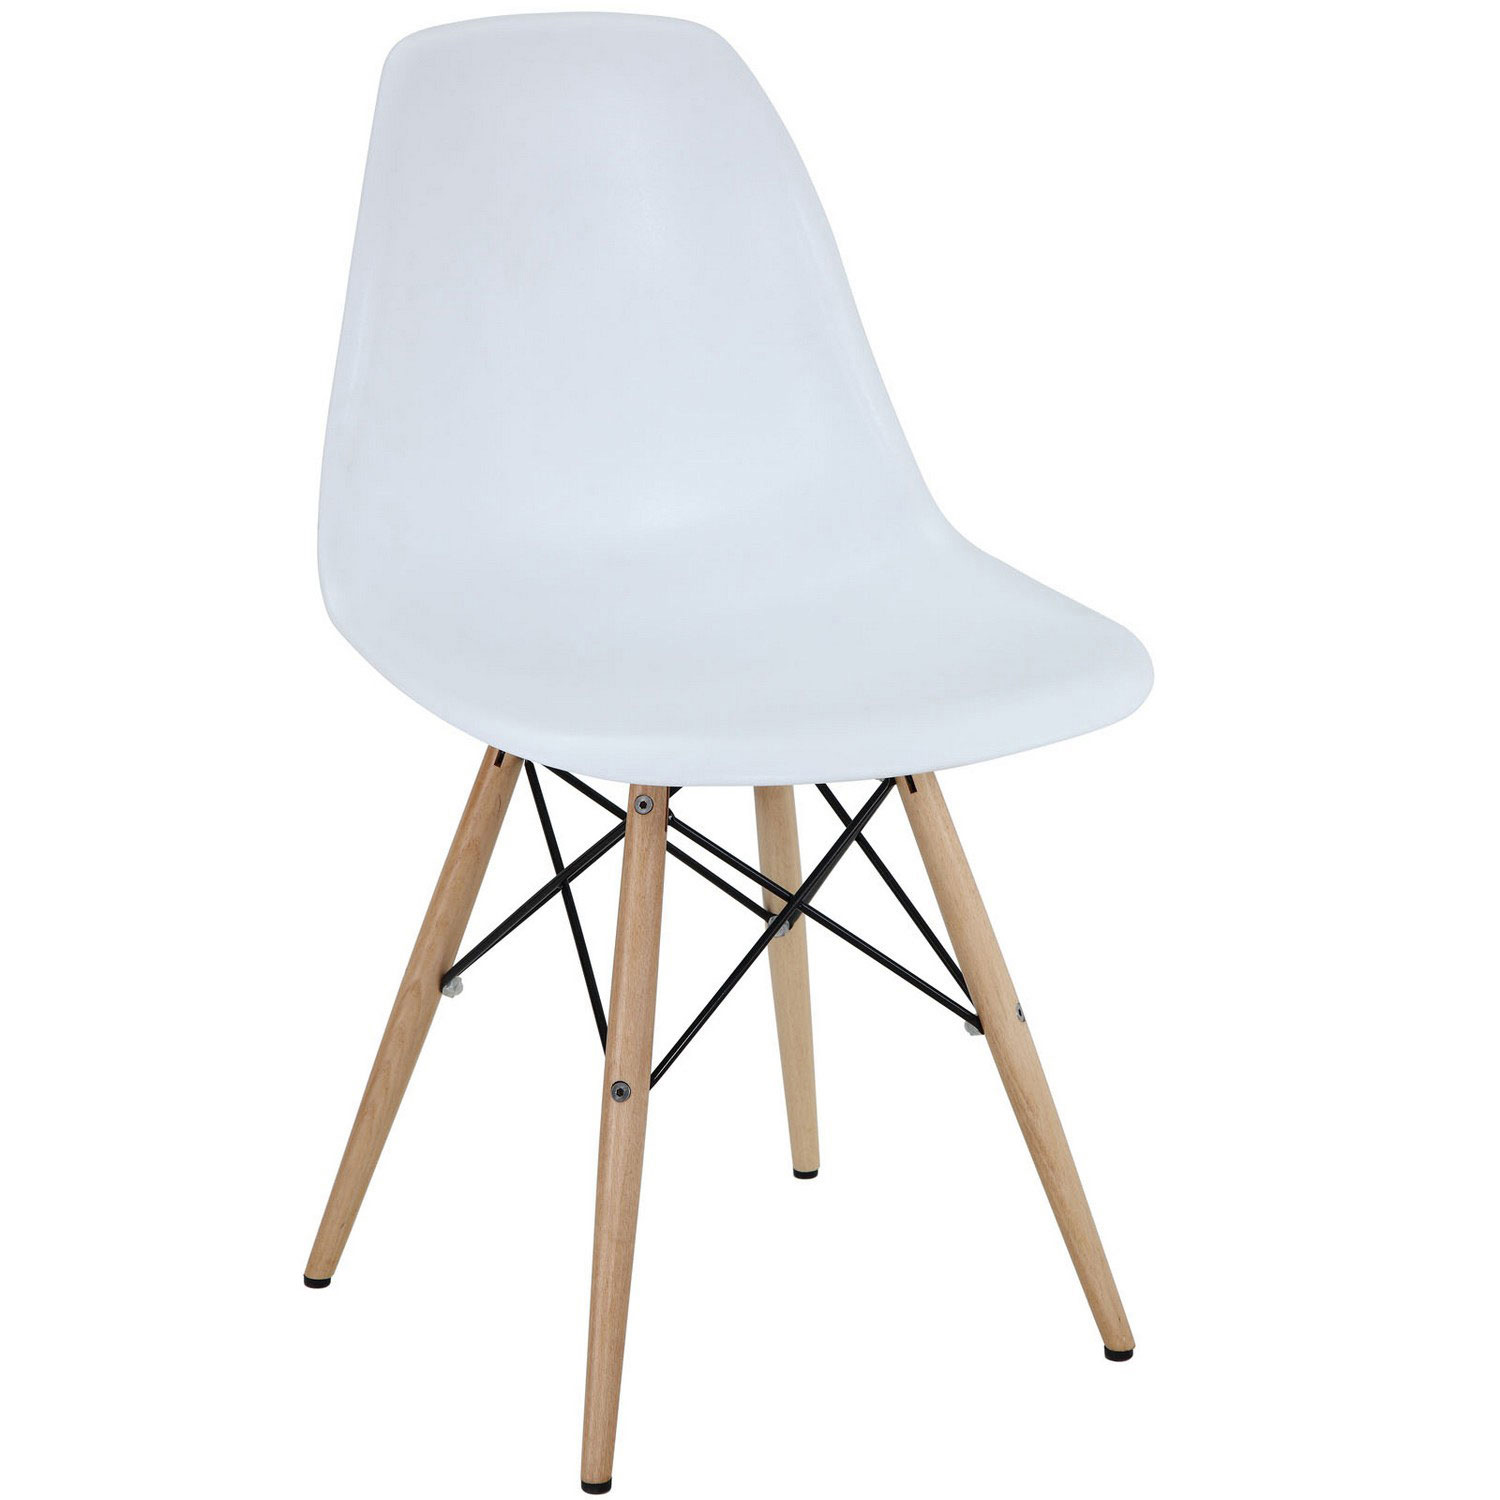 Modway Pyramid Dining Side Chair - White